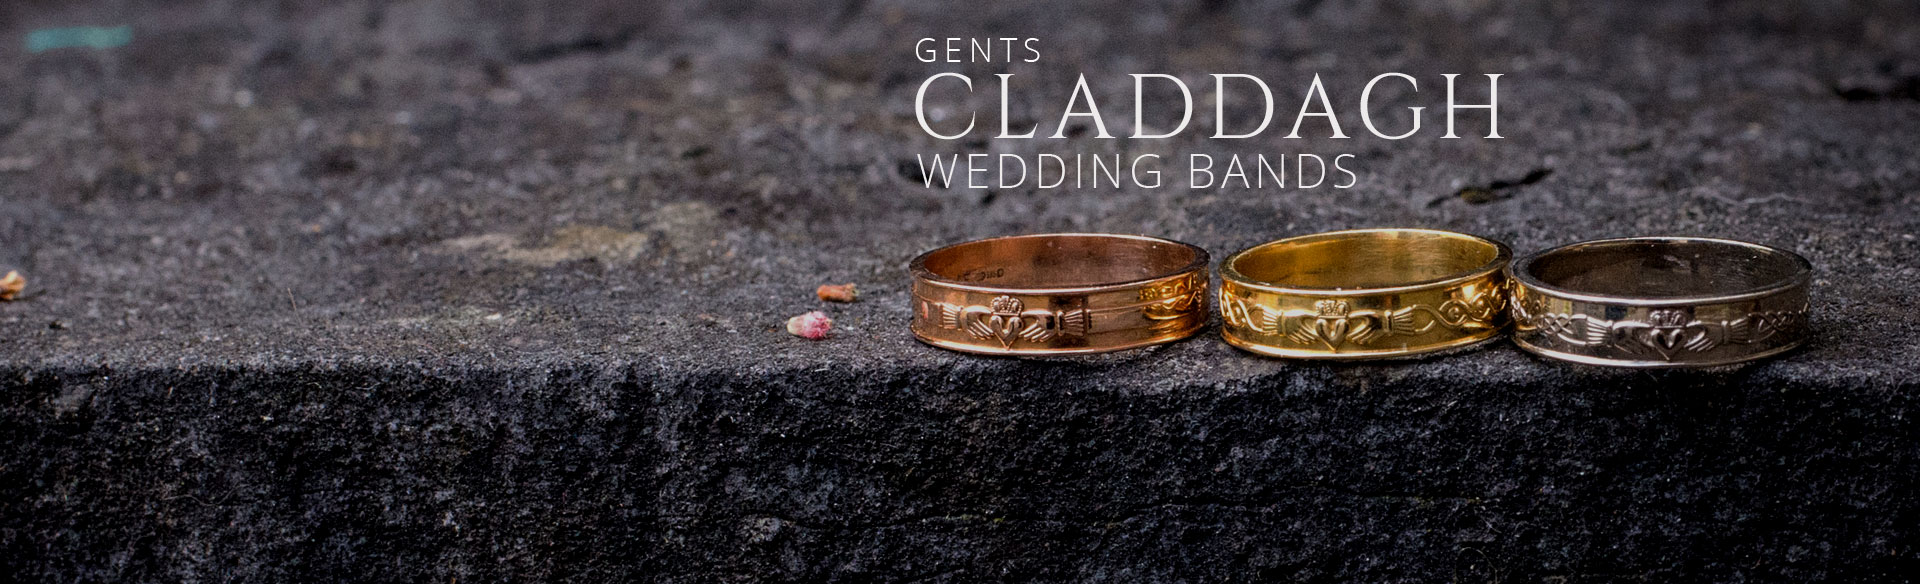 Gents Claddagh Wedding Rings